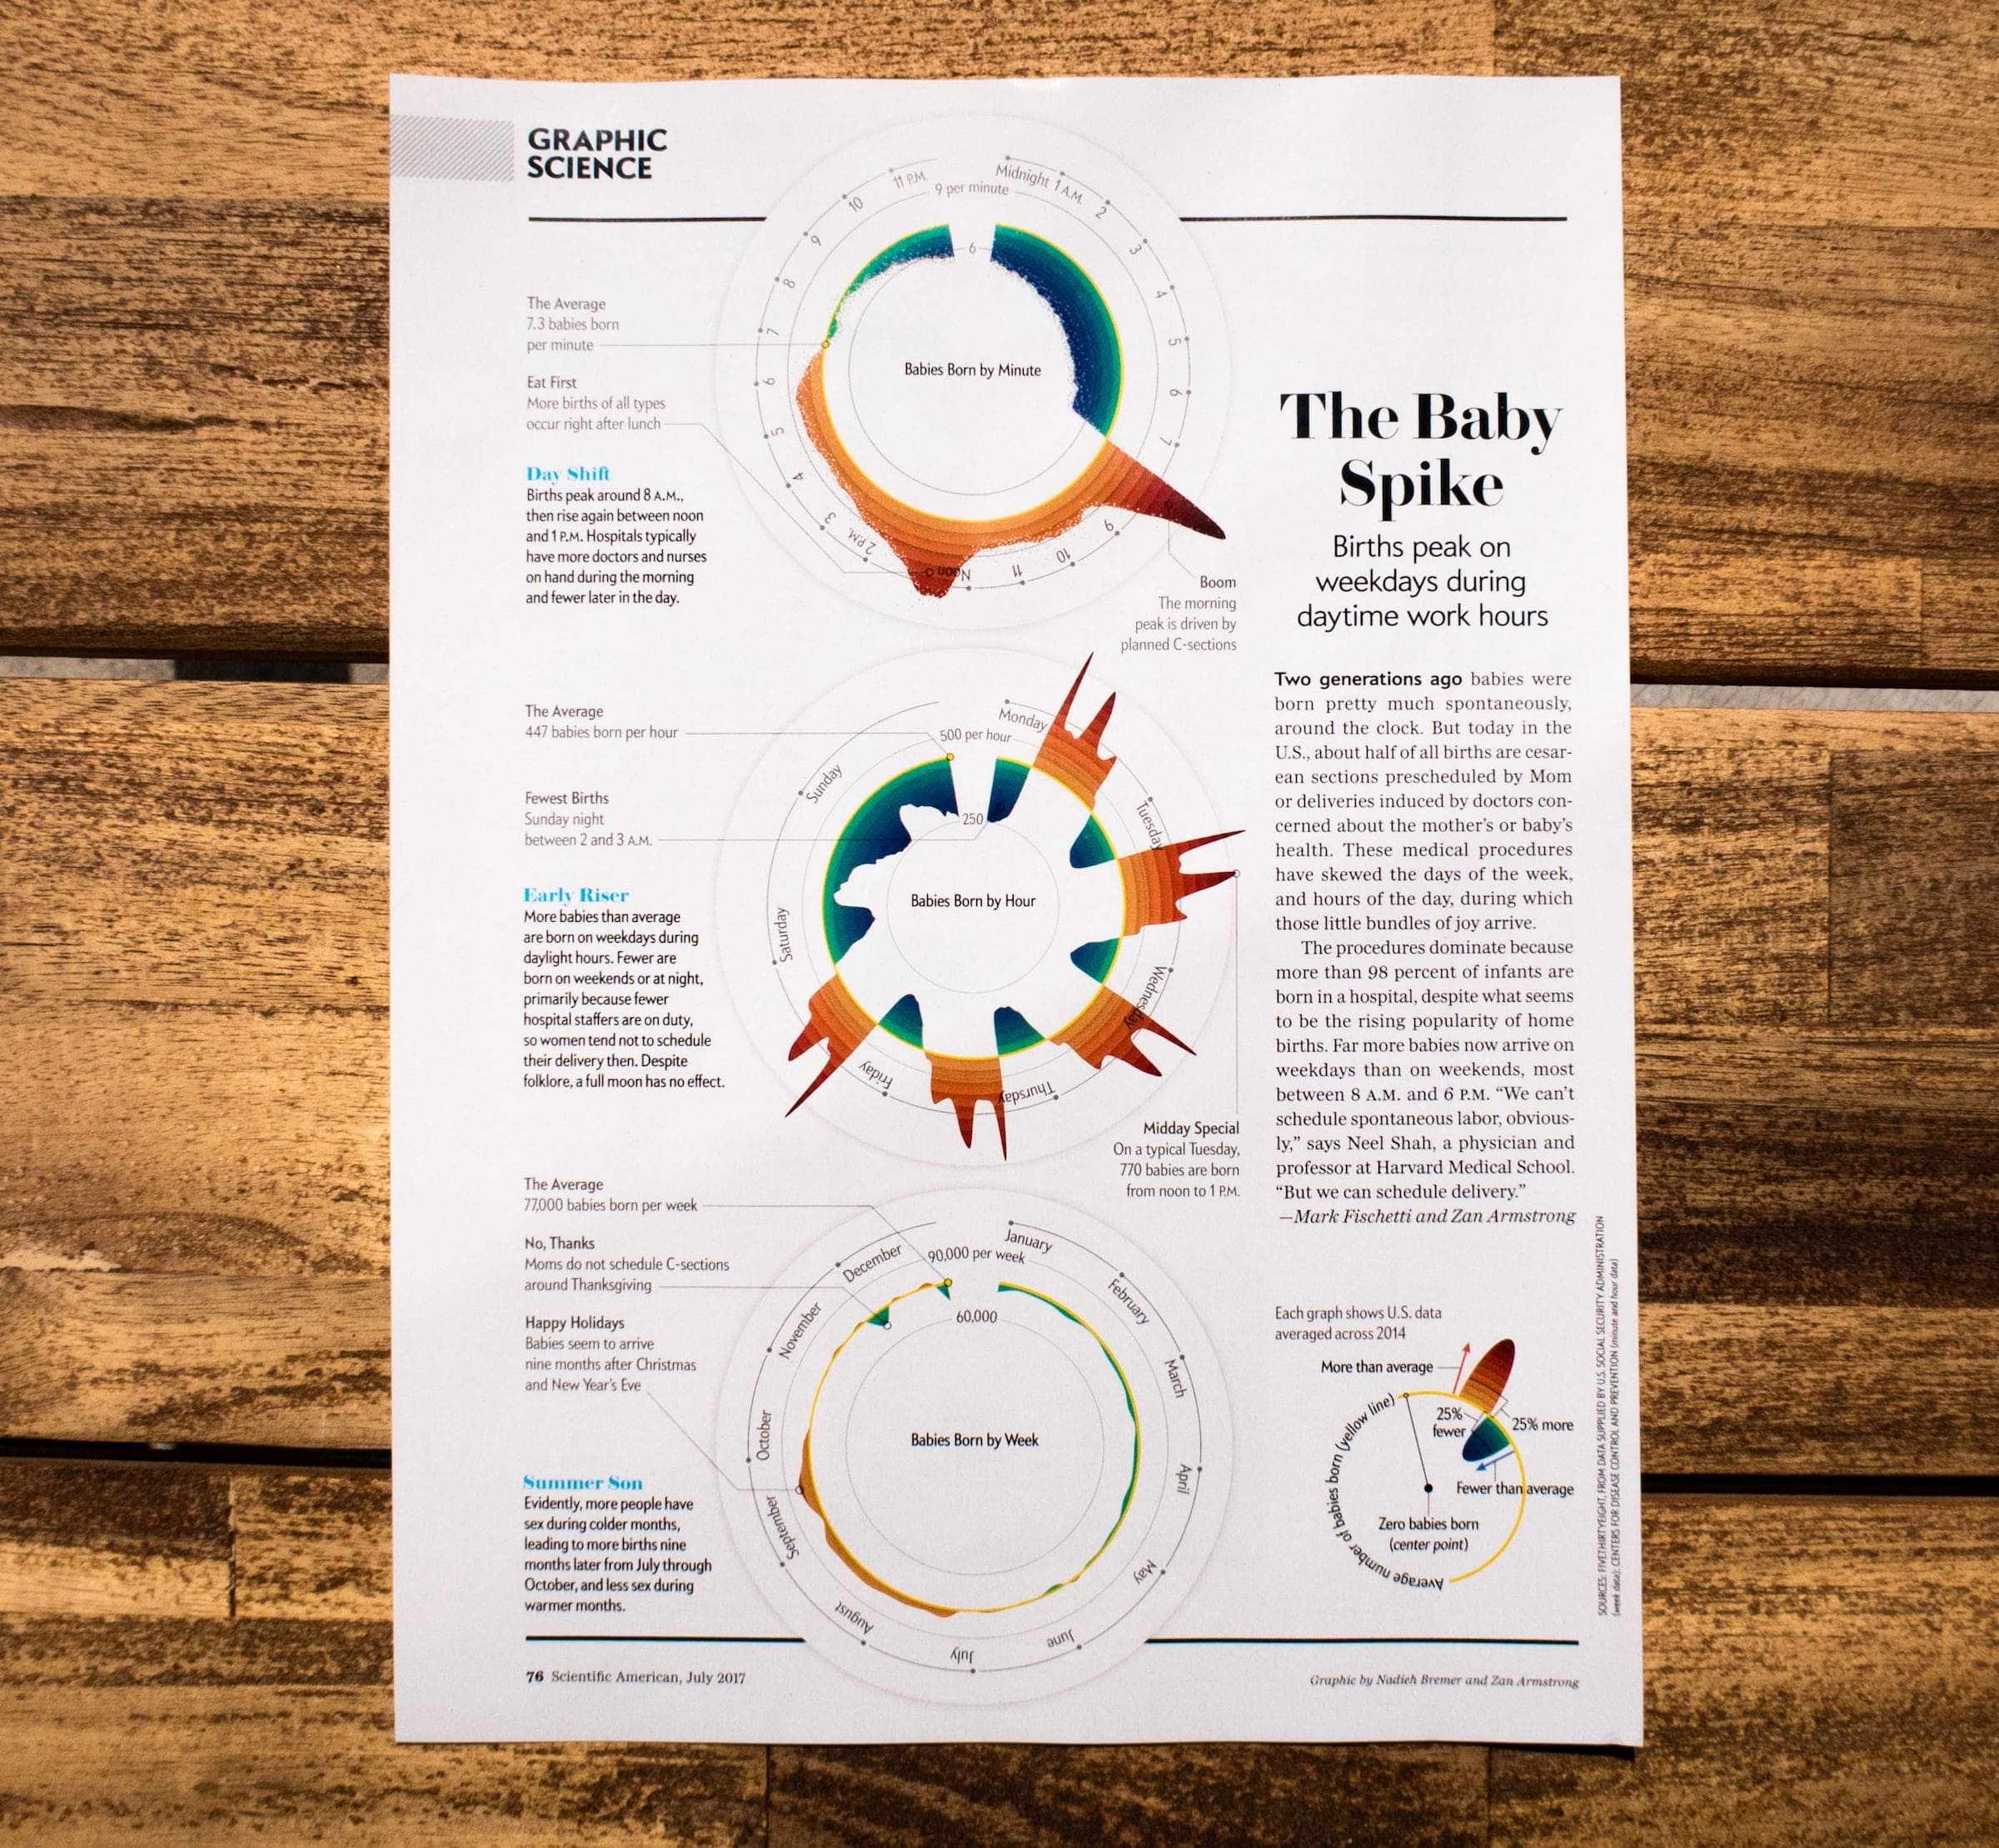 The full 'Graphic Science' page in the July edition of the Scientific American